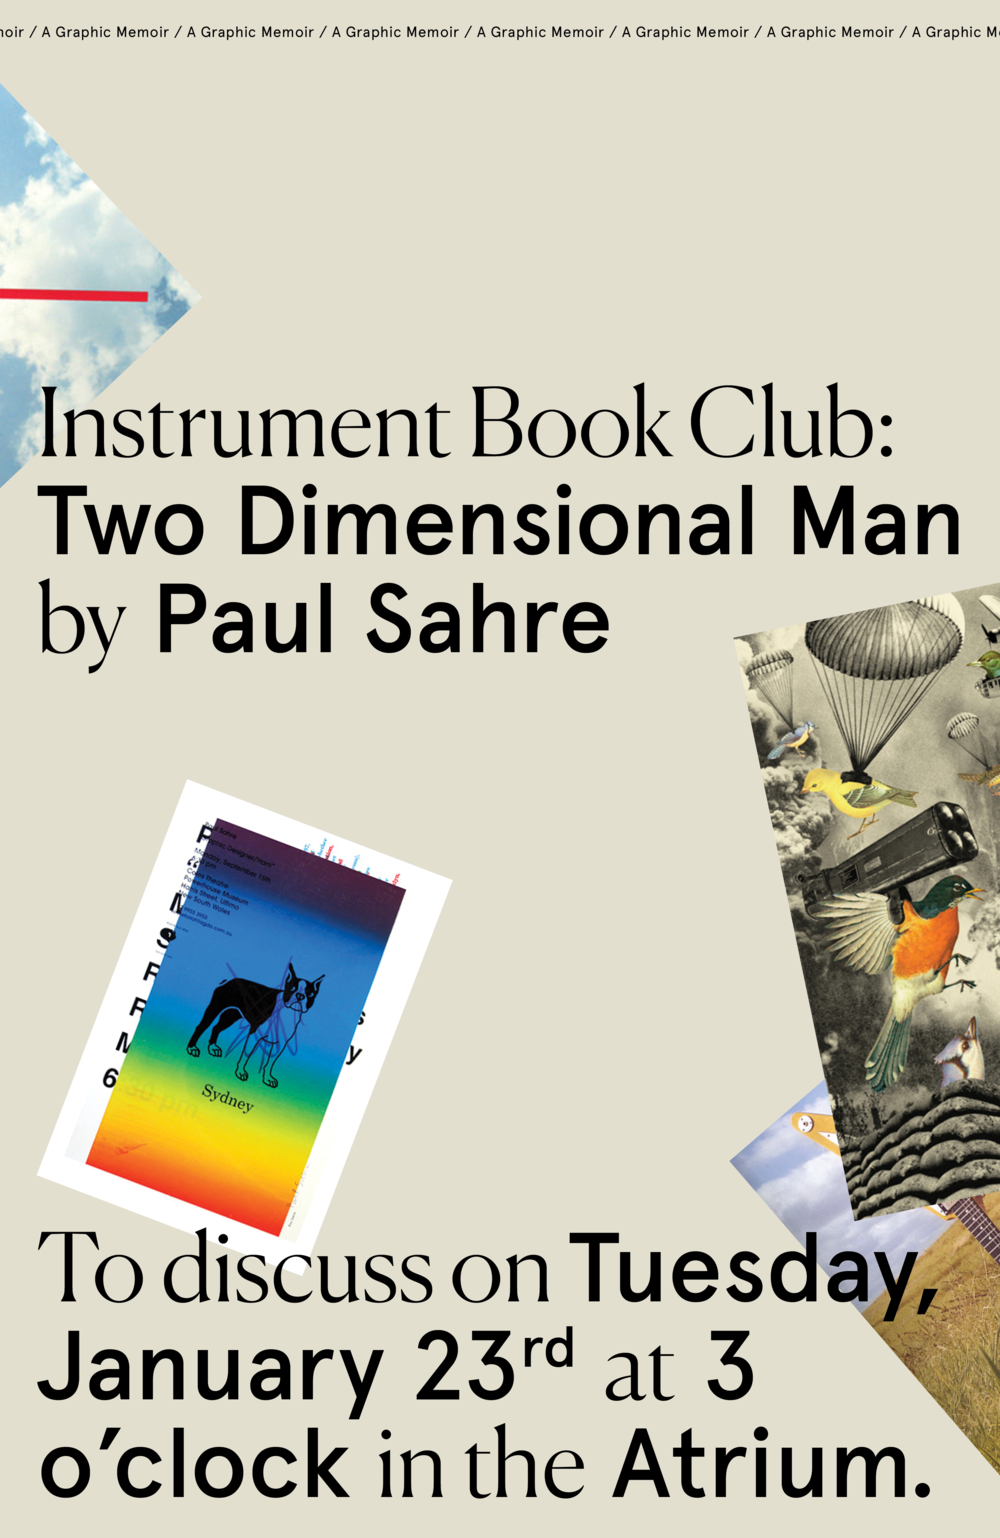 InstrumentBookClub_Poster(Small)2.png